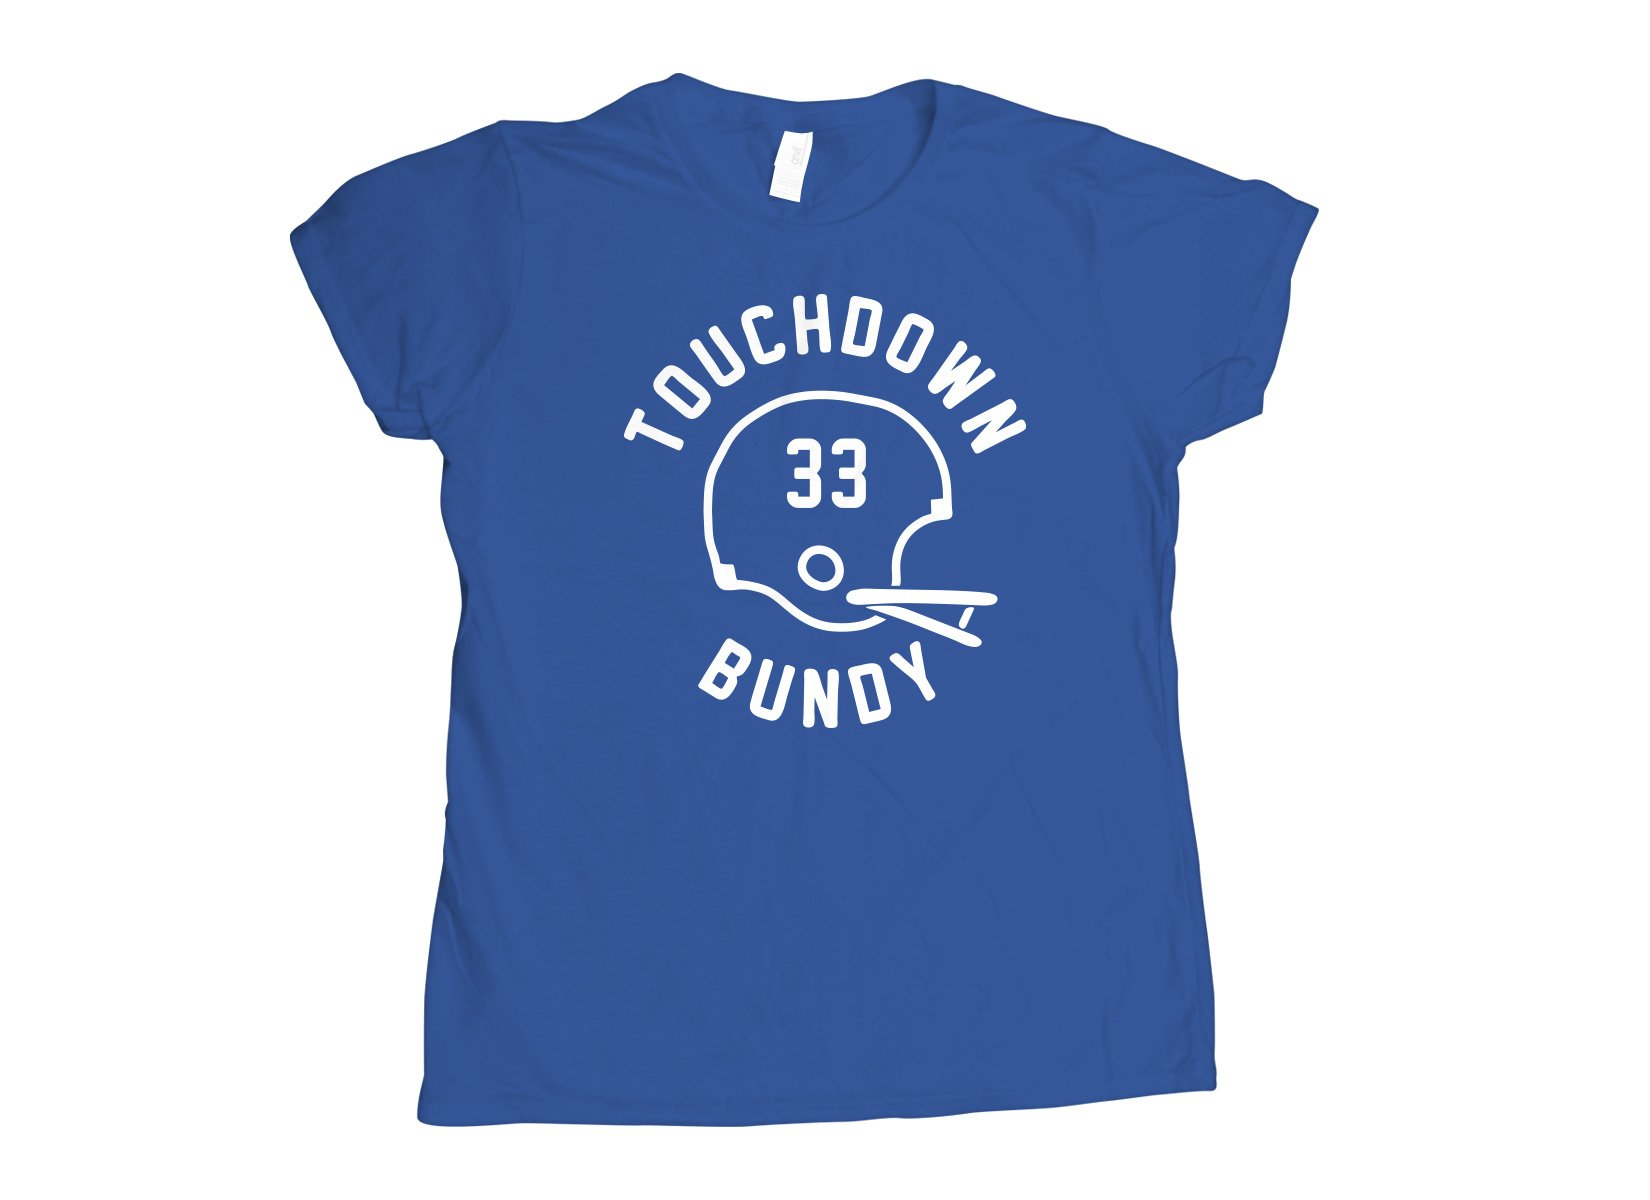 Touchdown Bundy on Womens T-Shirt